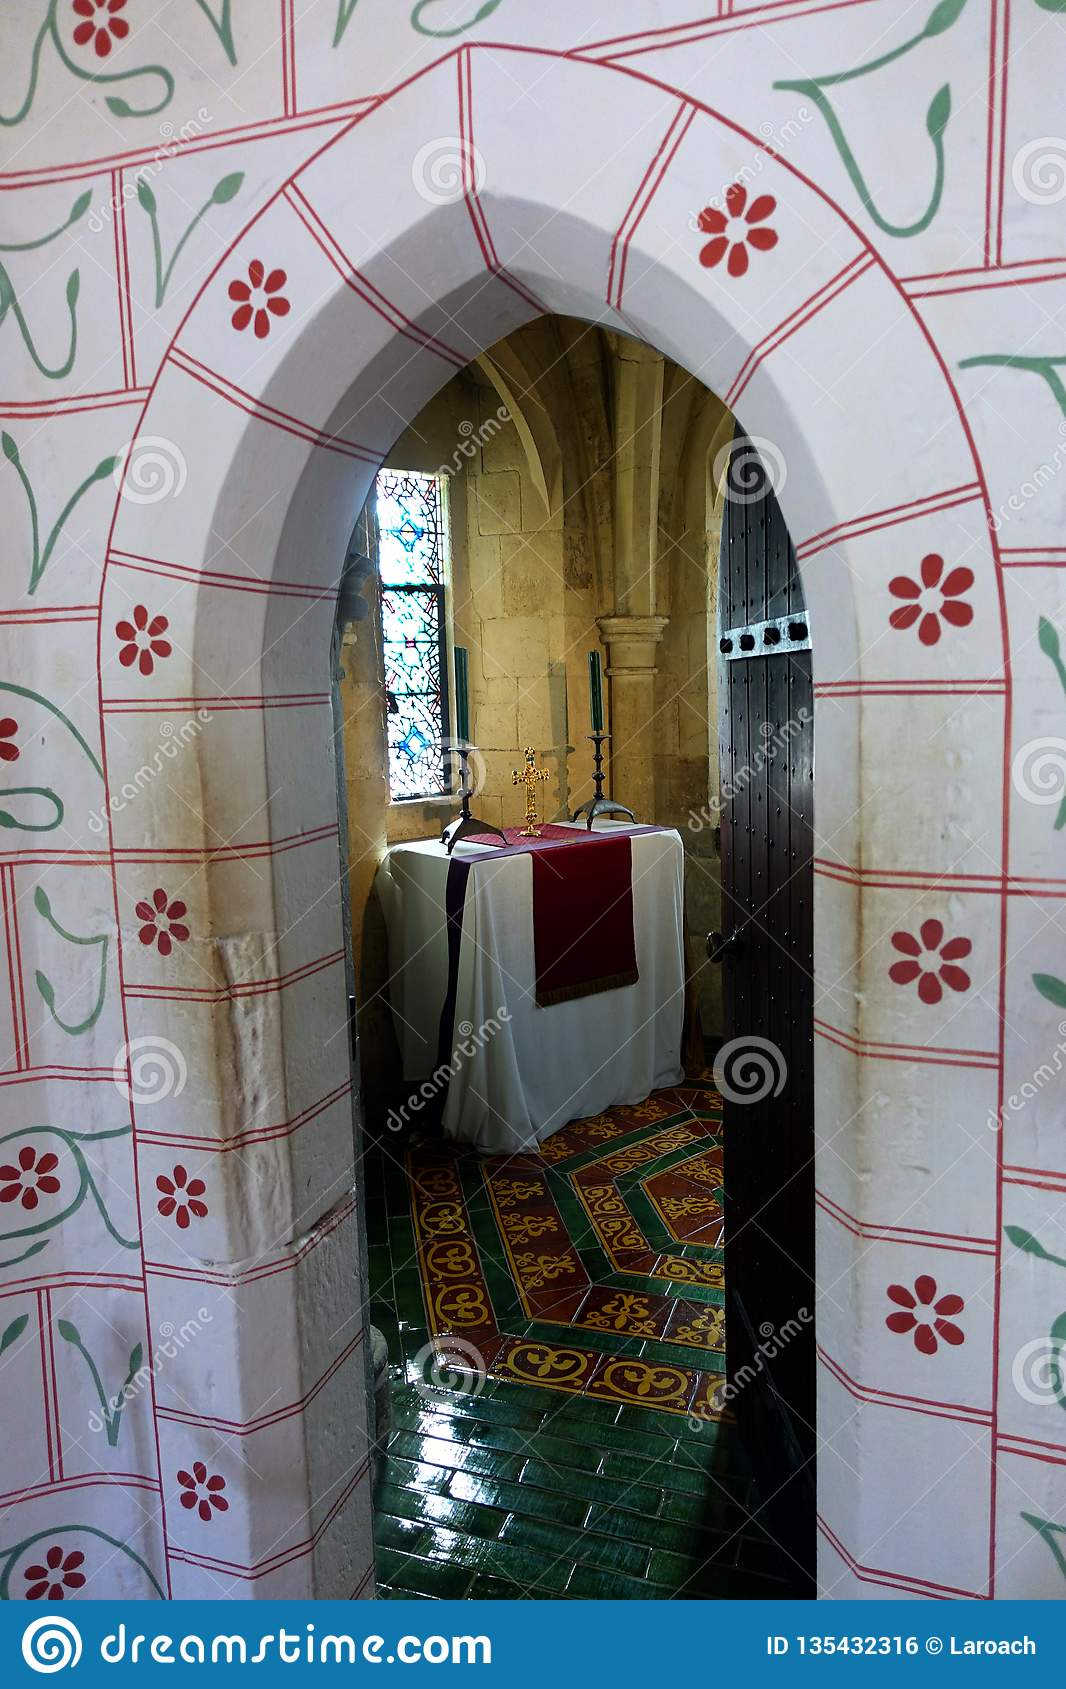 Private Chapel of Prayer in Tower of London